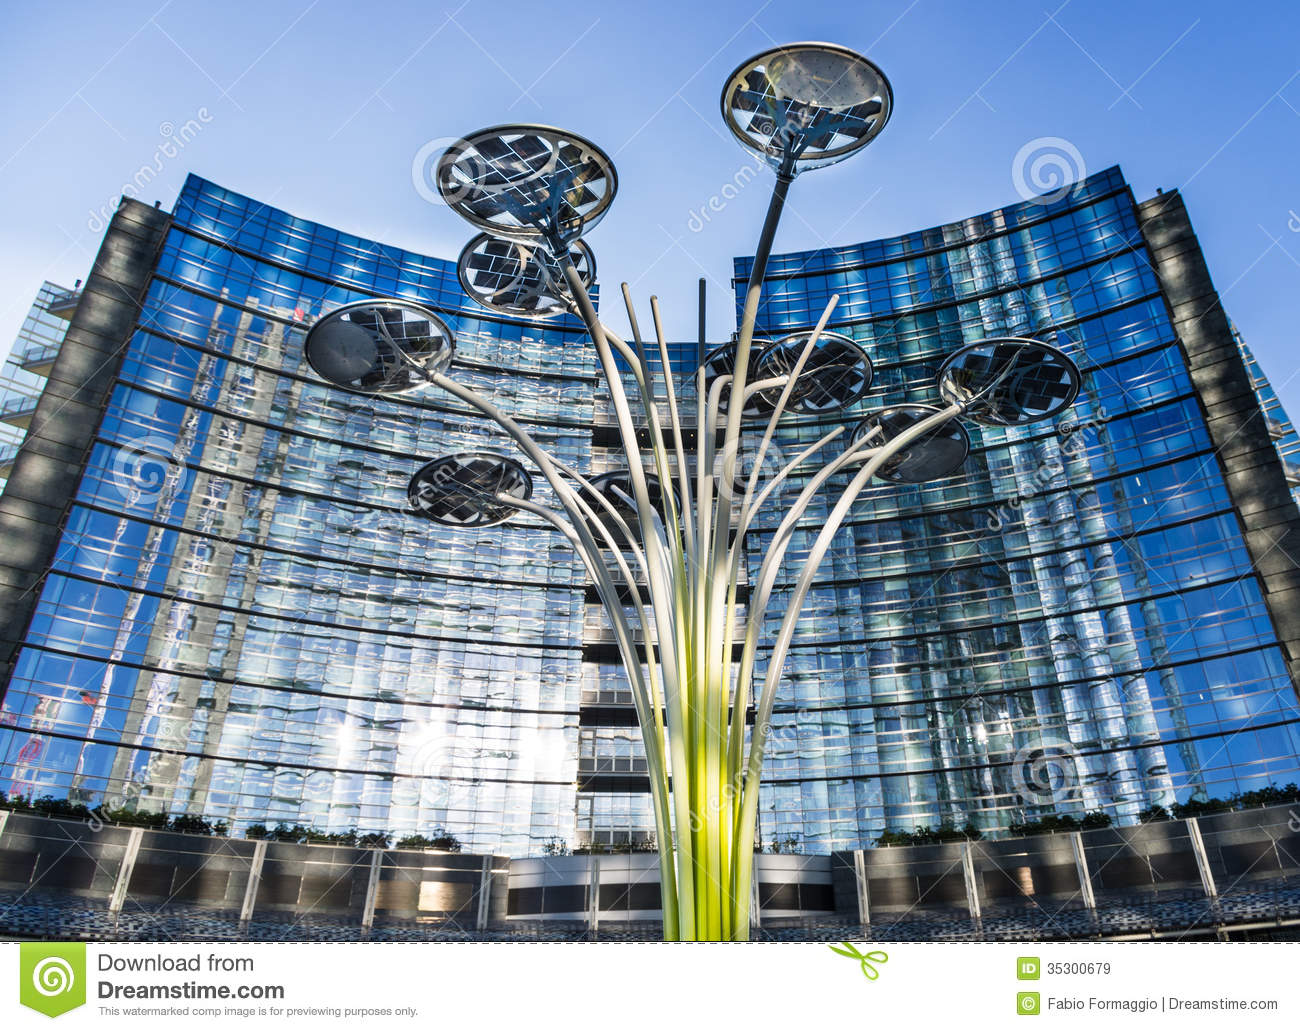 Royalty Free Stock Images Modern Architecture Urban Milan Italy Image35300679 on living room themes